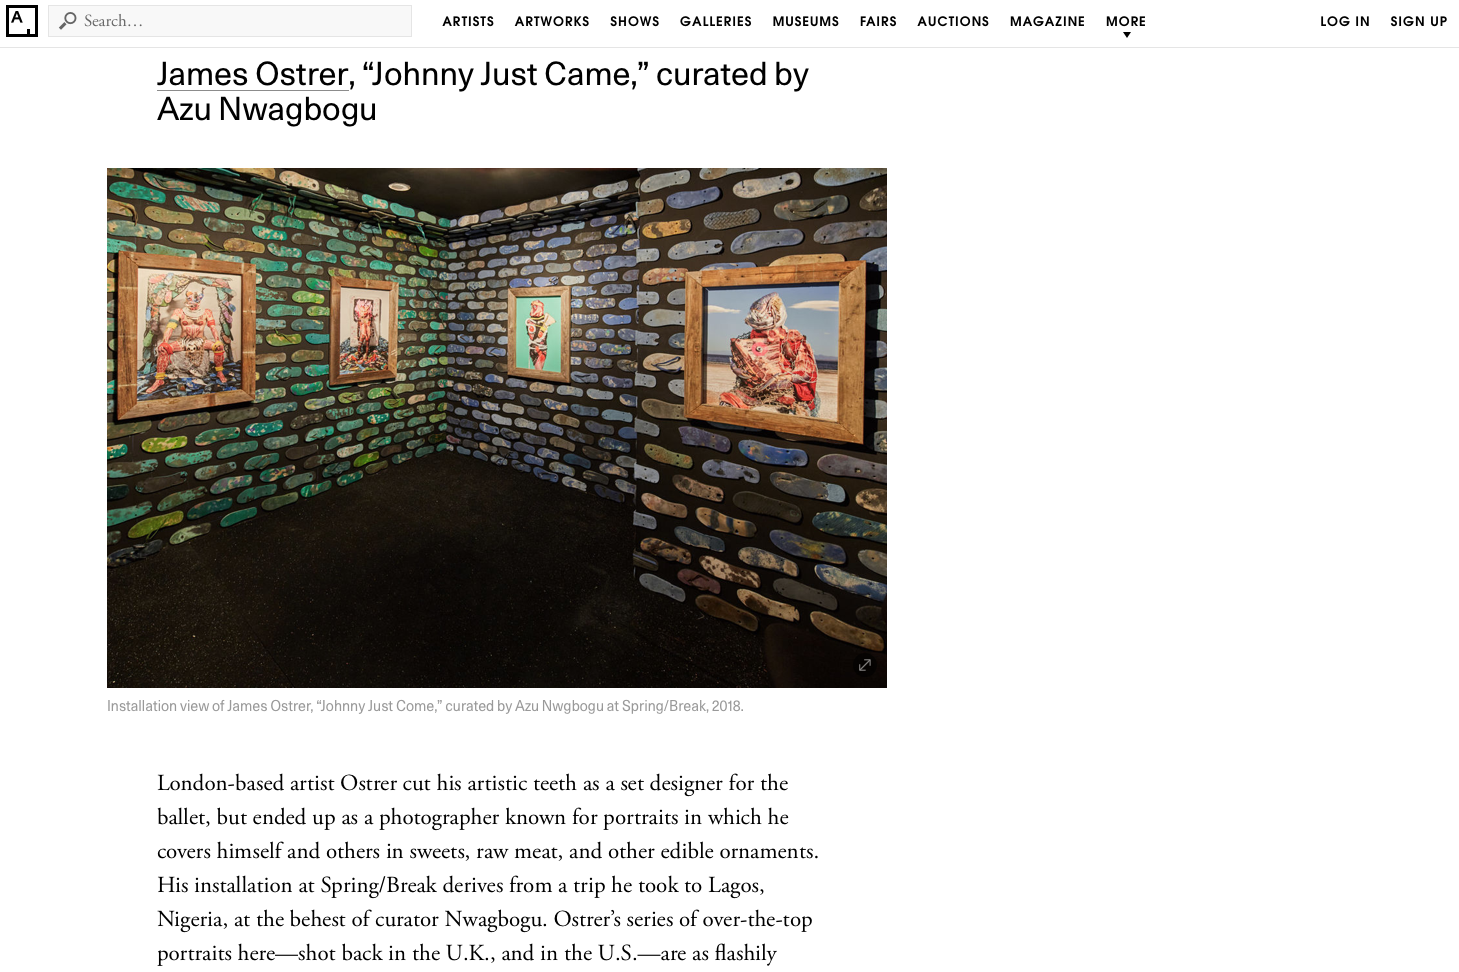 JAMES OSTRER | ARTSY | MARCH 2018